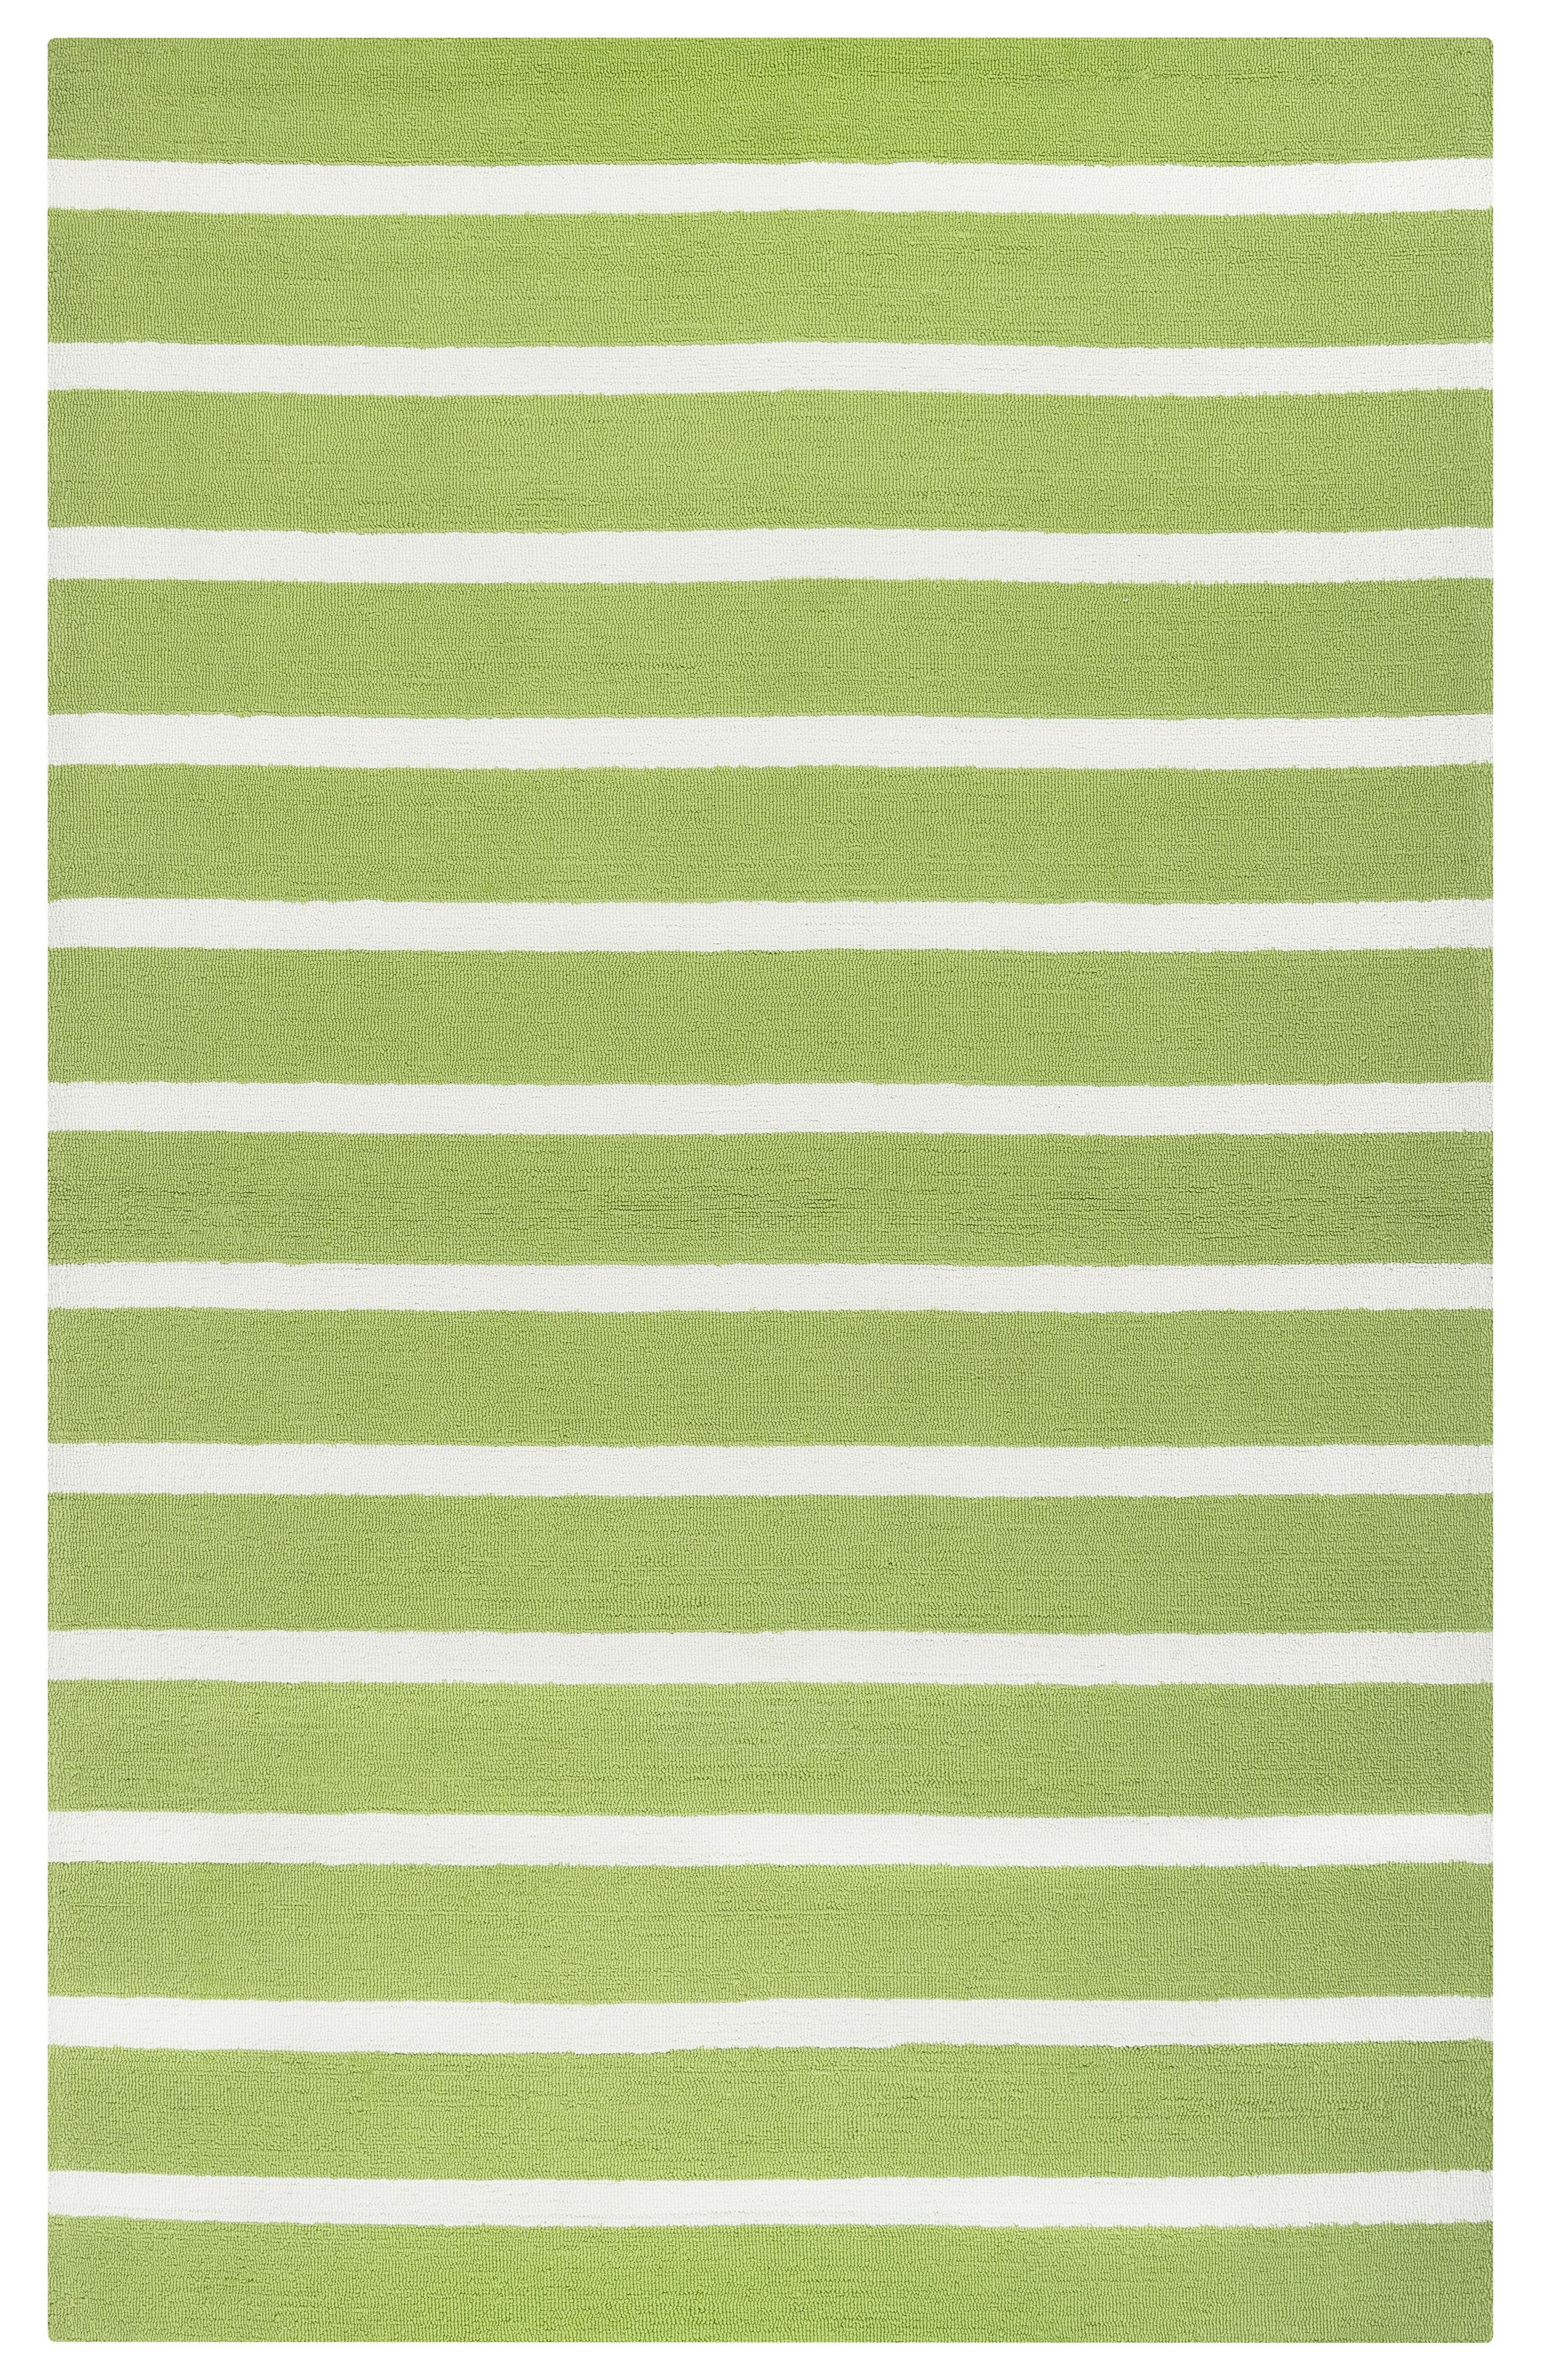 Lyndon Hand-Tufted Lime Indoor/Outdoor Area Rug Size: Rectangle 5' x 7'6